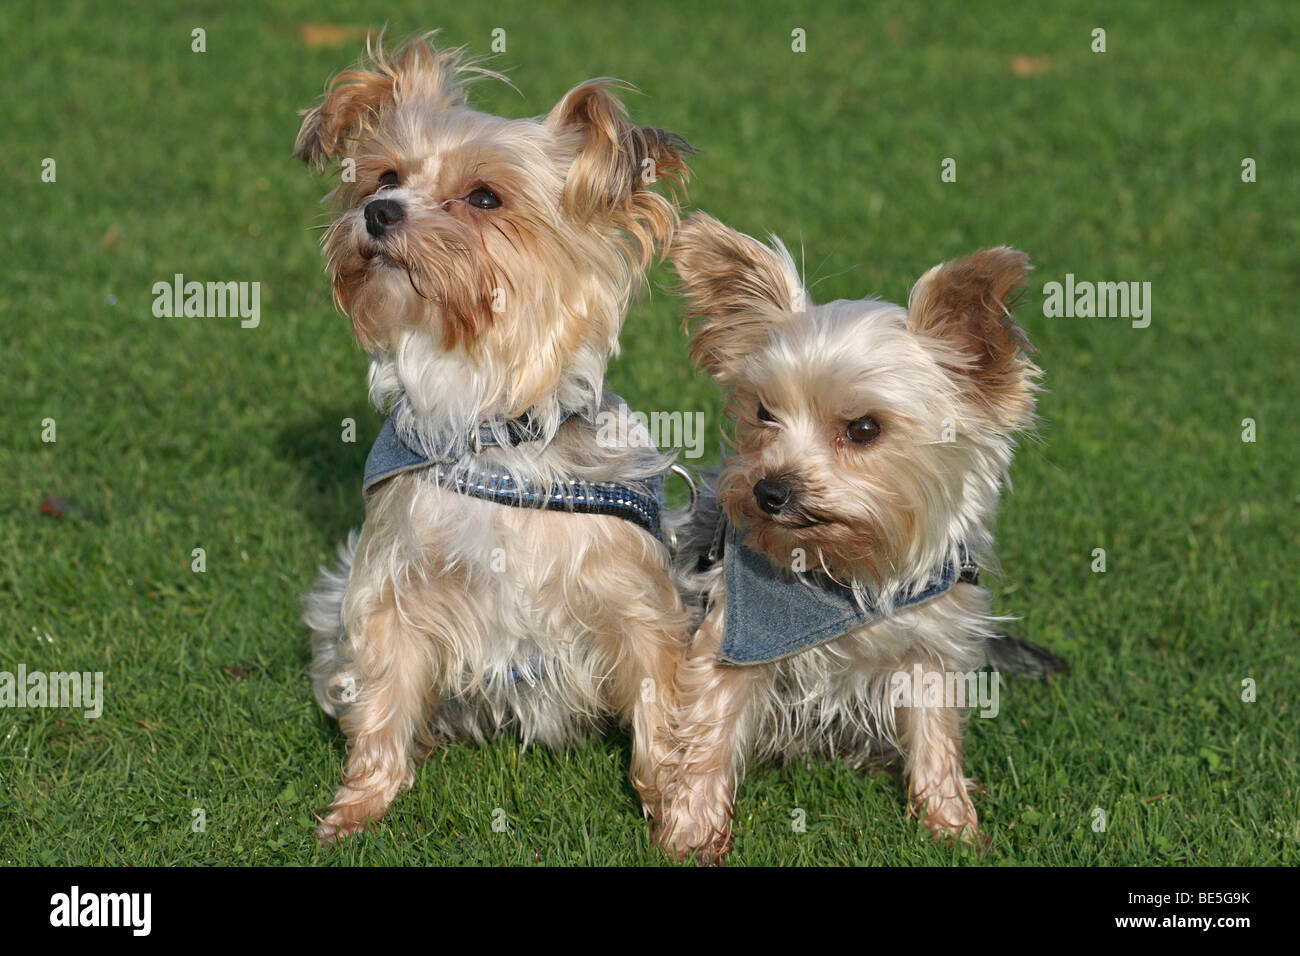 2 Yorkshire Terrier-Maltese hybrids sitting next to each other on a lawn - Stock Image